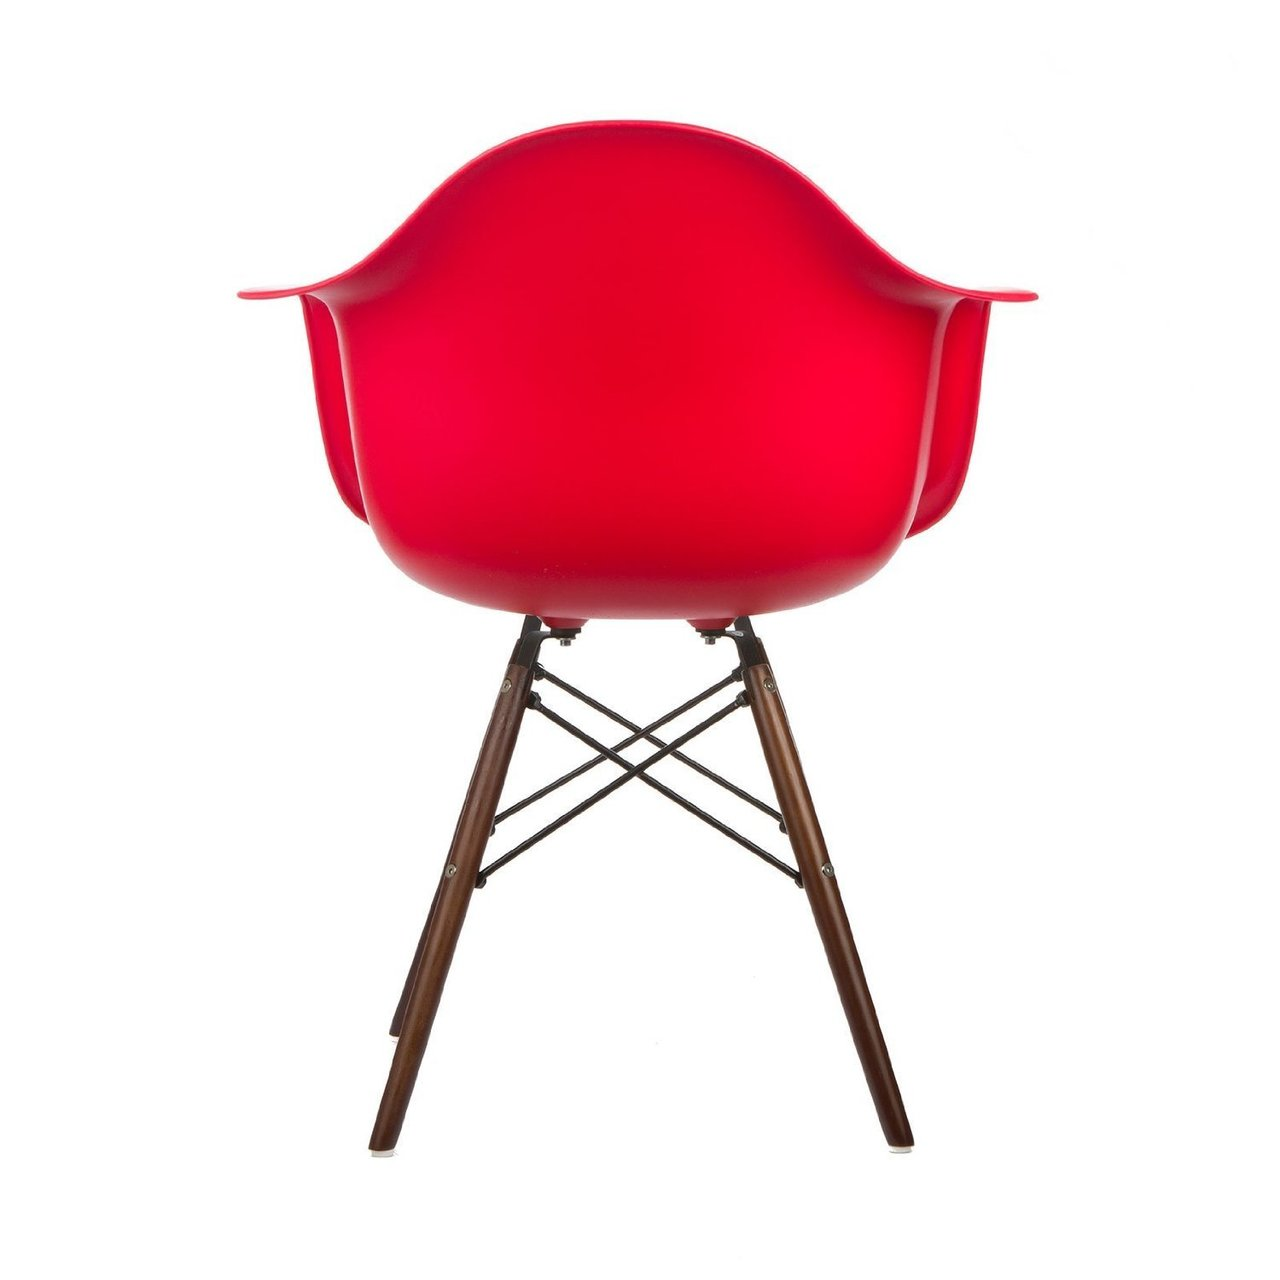 red lounge chair damask banquet covers modern style armchair with walnut wood legs eiffel dining room arm arms chairs seats wooden leg wire dowel